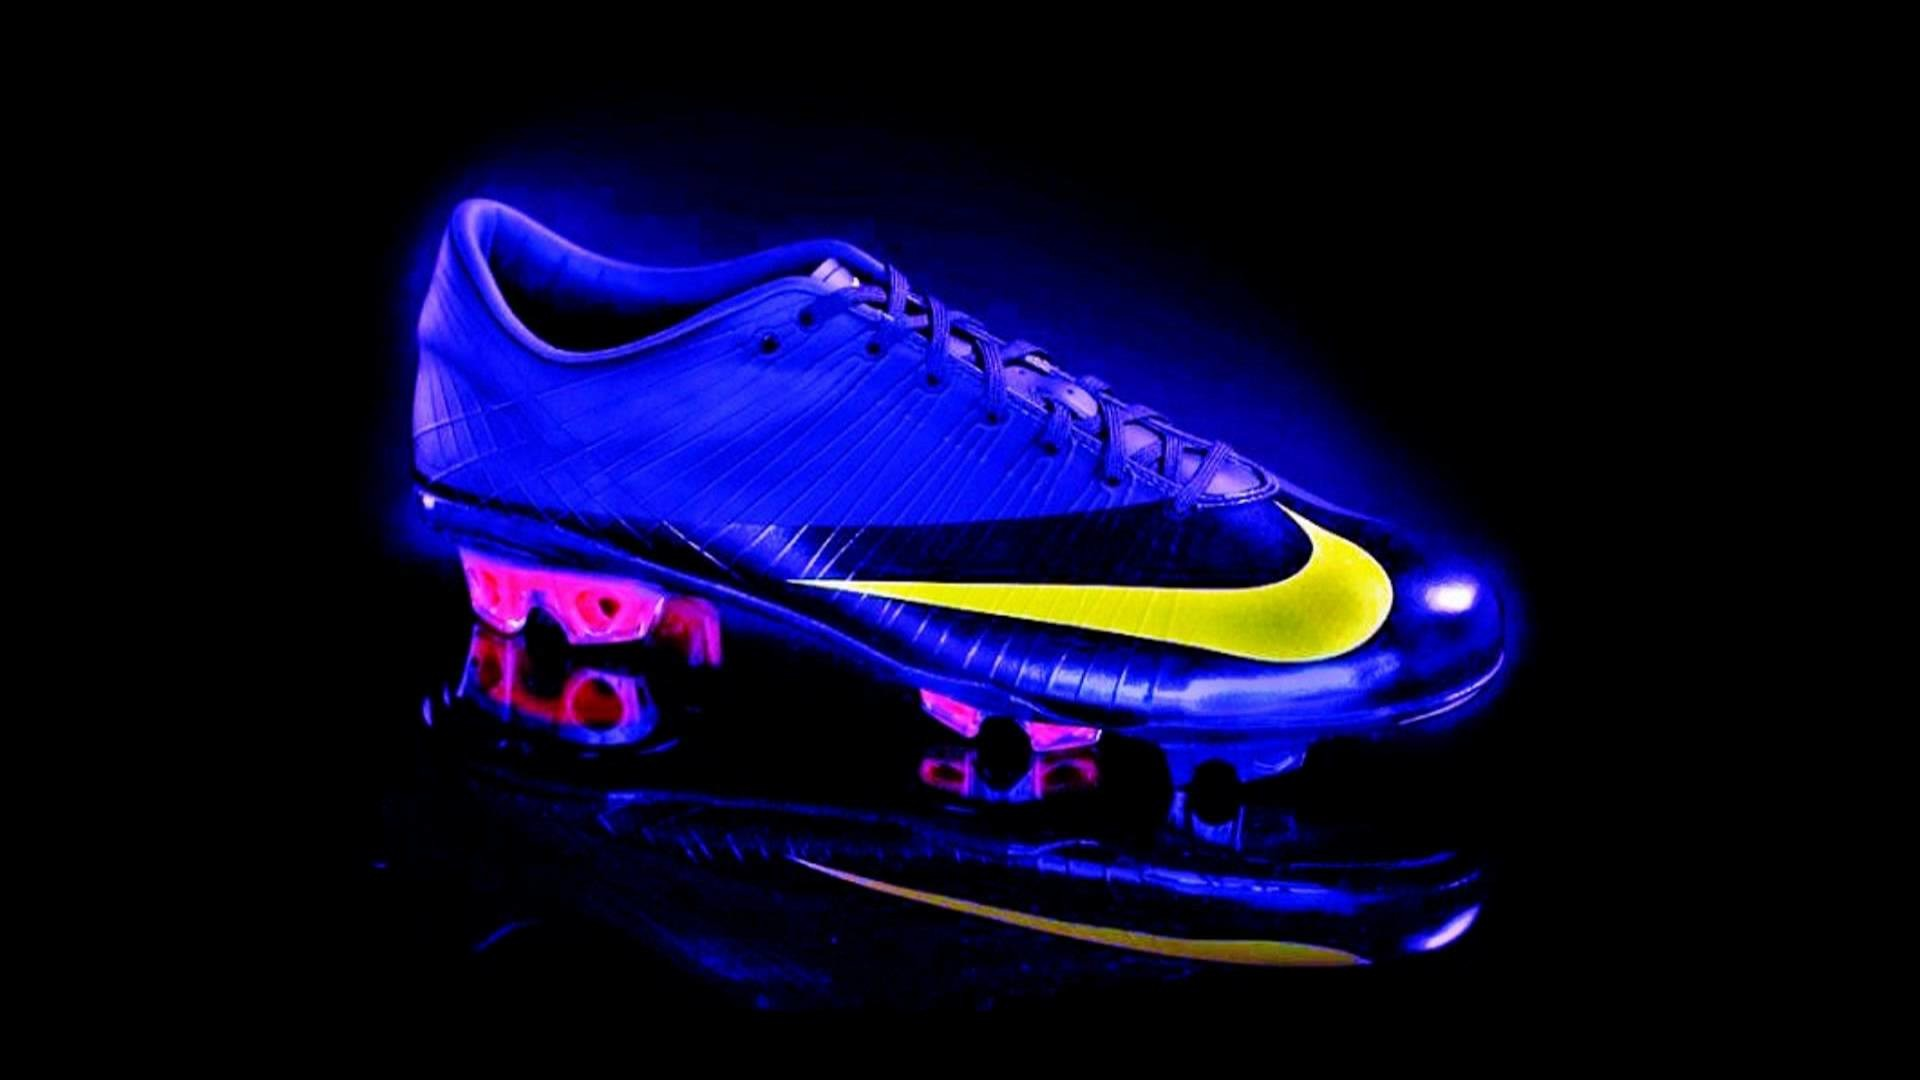 cool soccer boots. >